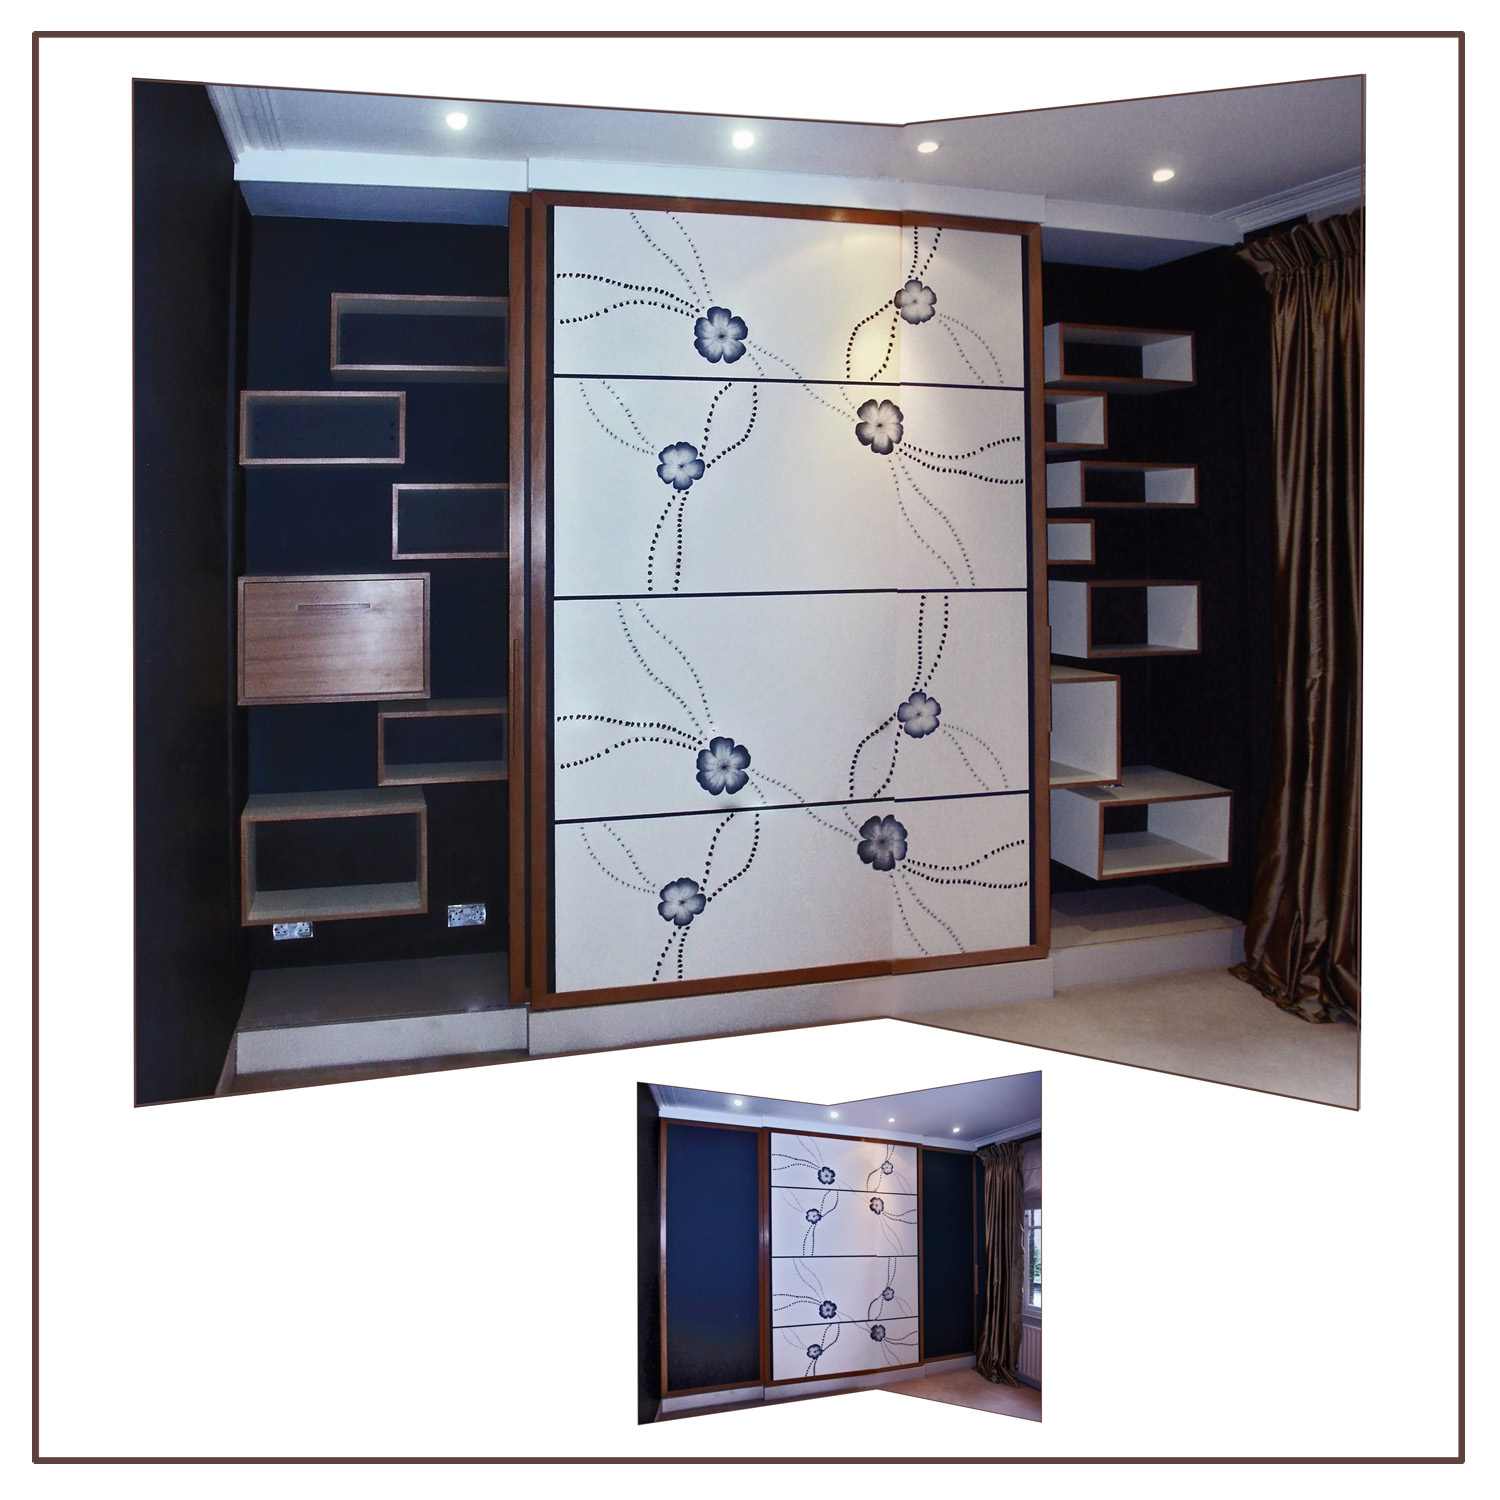 Storage Solutions Fitted Shelving And Storage Solutions Gallery Tim Oldham Furniture